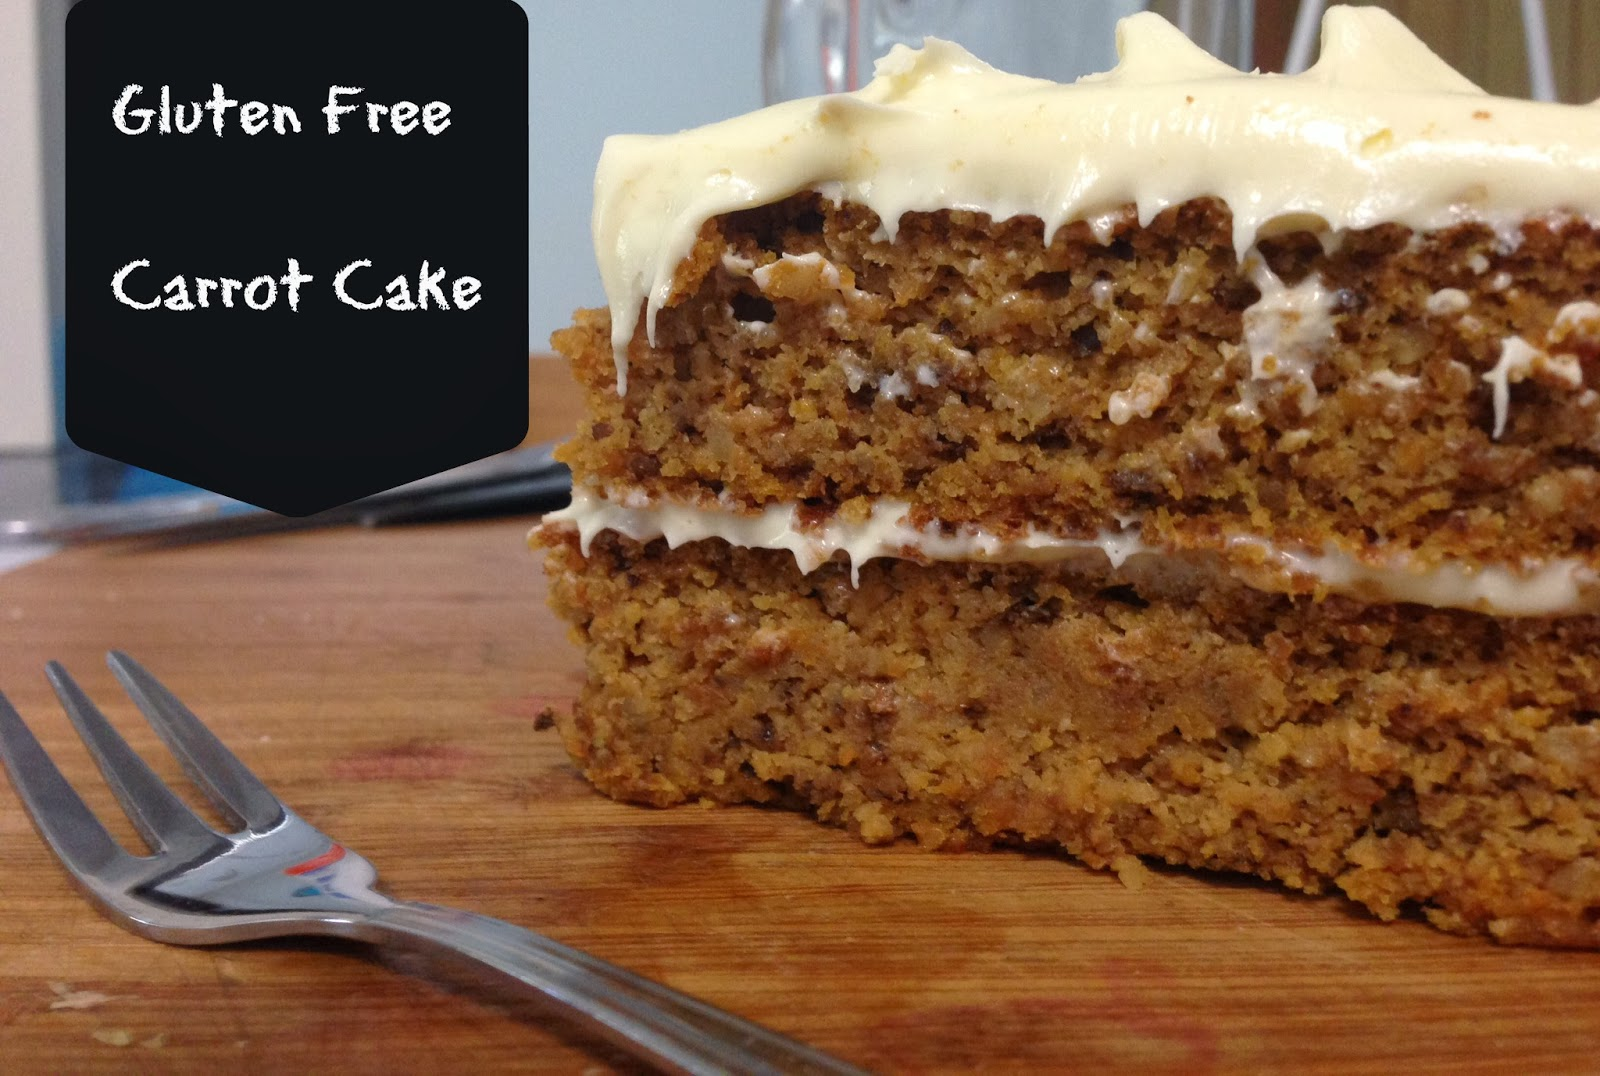 ... land the gluten free carrot cake to end all gluten free carrot cakes